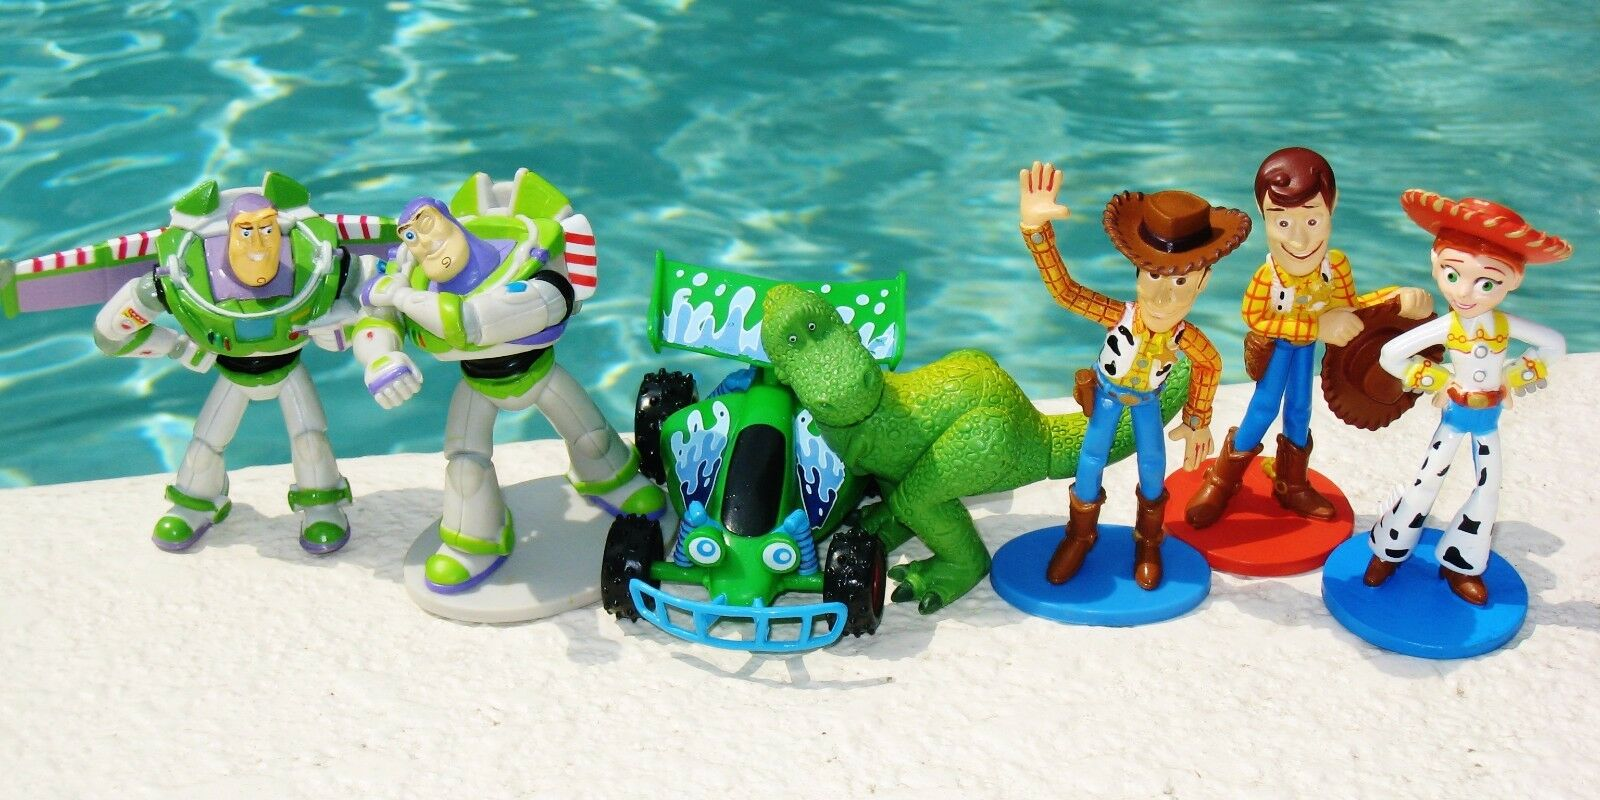 Toy Story Character Playset Assorted Assorted Assorted Woody Buzz 7 Figures Lot Cake Topper Toys 0c72c0